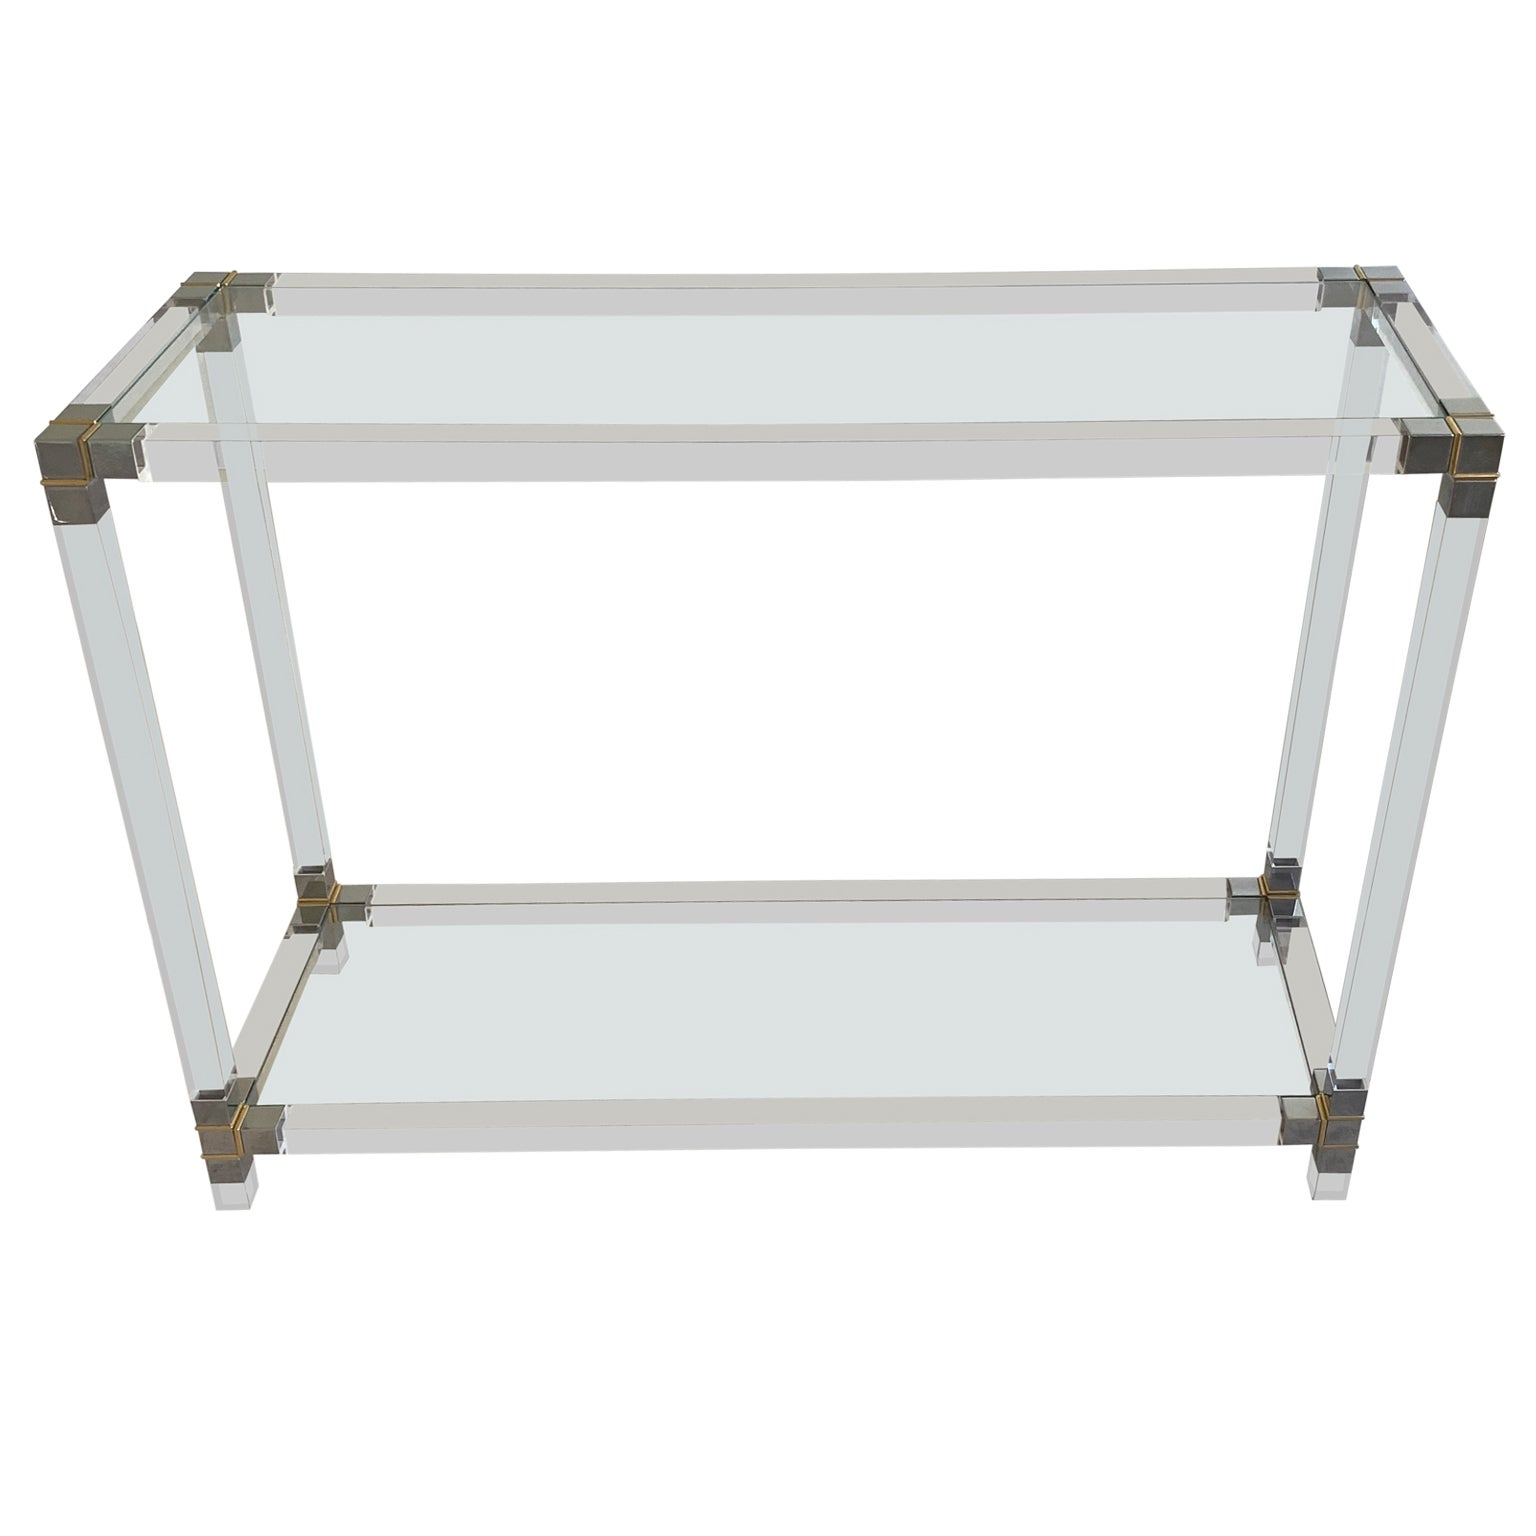 Mid-Century Modern Glass-Top Console Table in Lucite, Polished Nickel and Brass